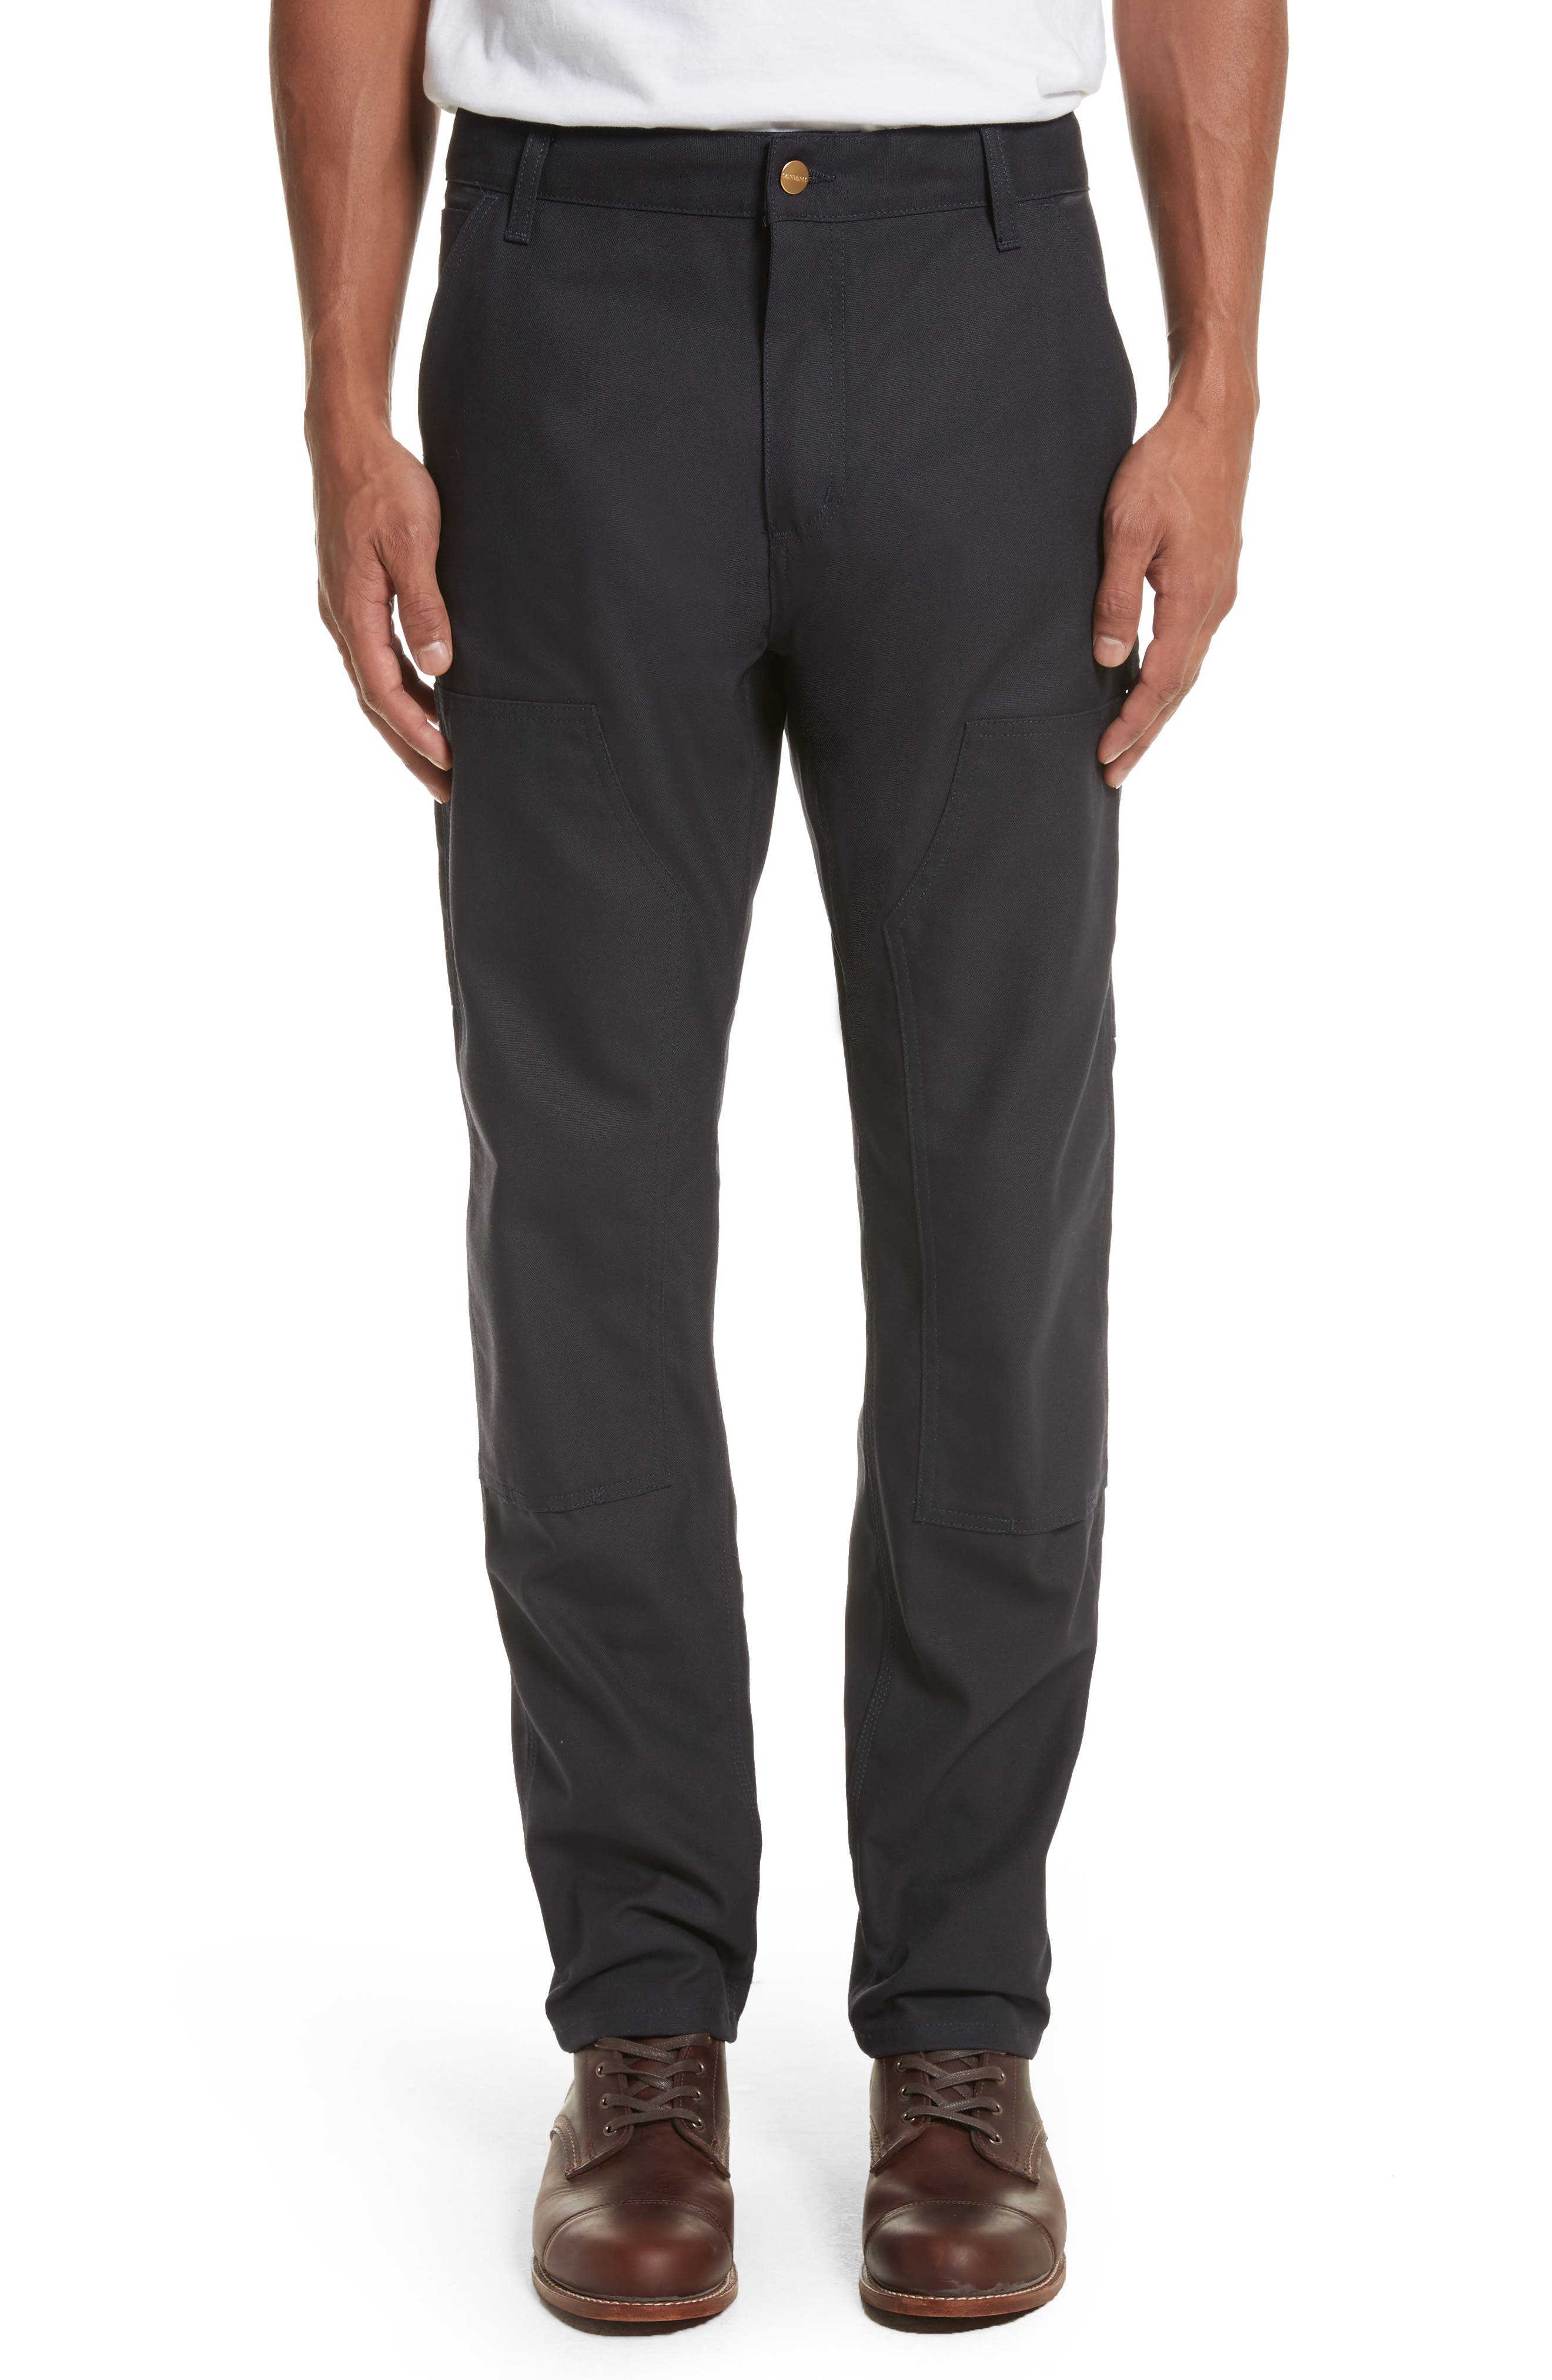 Alternate Image 1 Selected - Carhartt Work in Progress Ruck Double Knee Canvas Pants